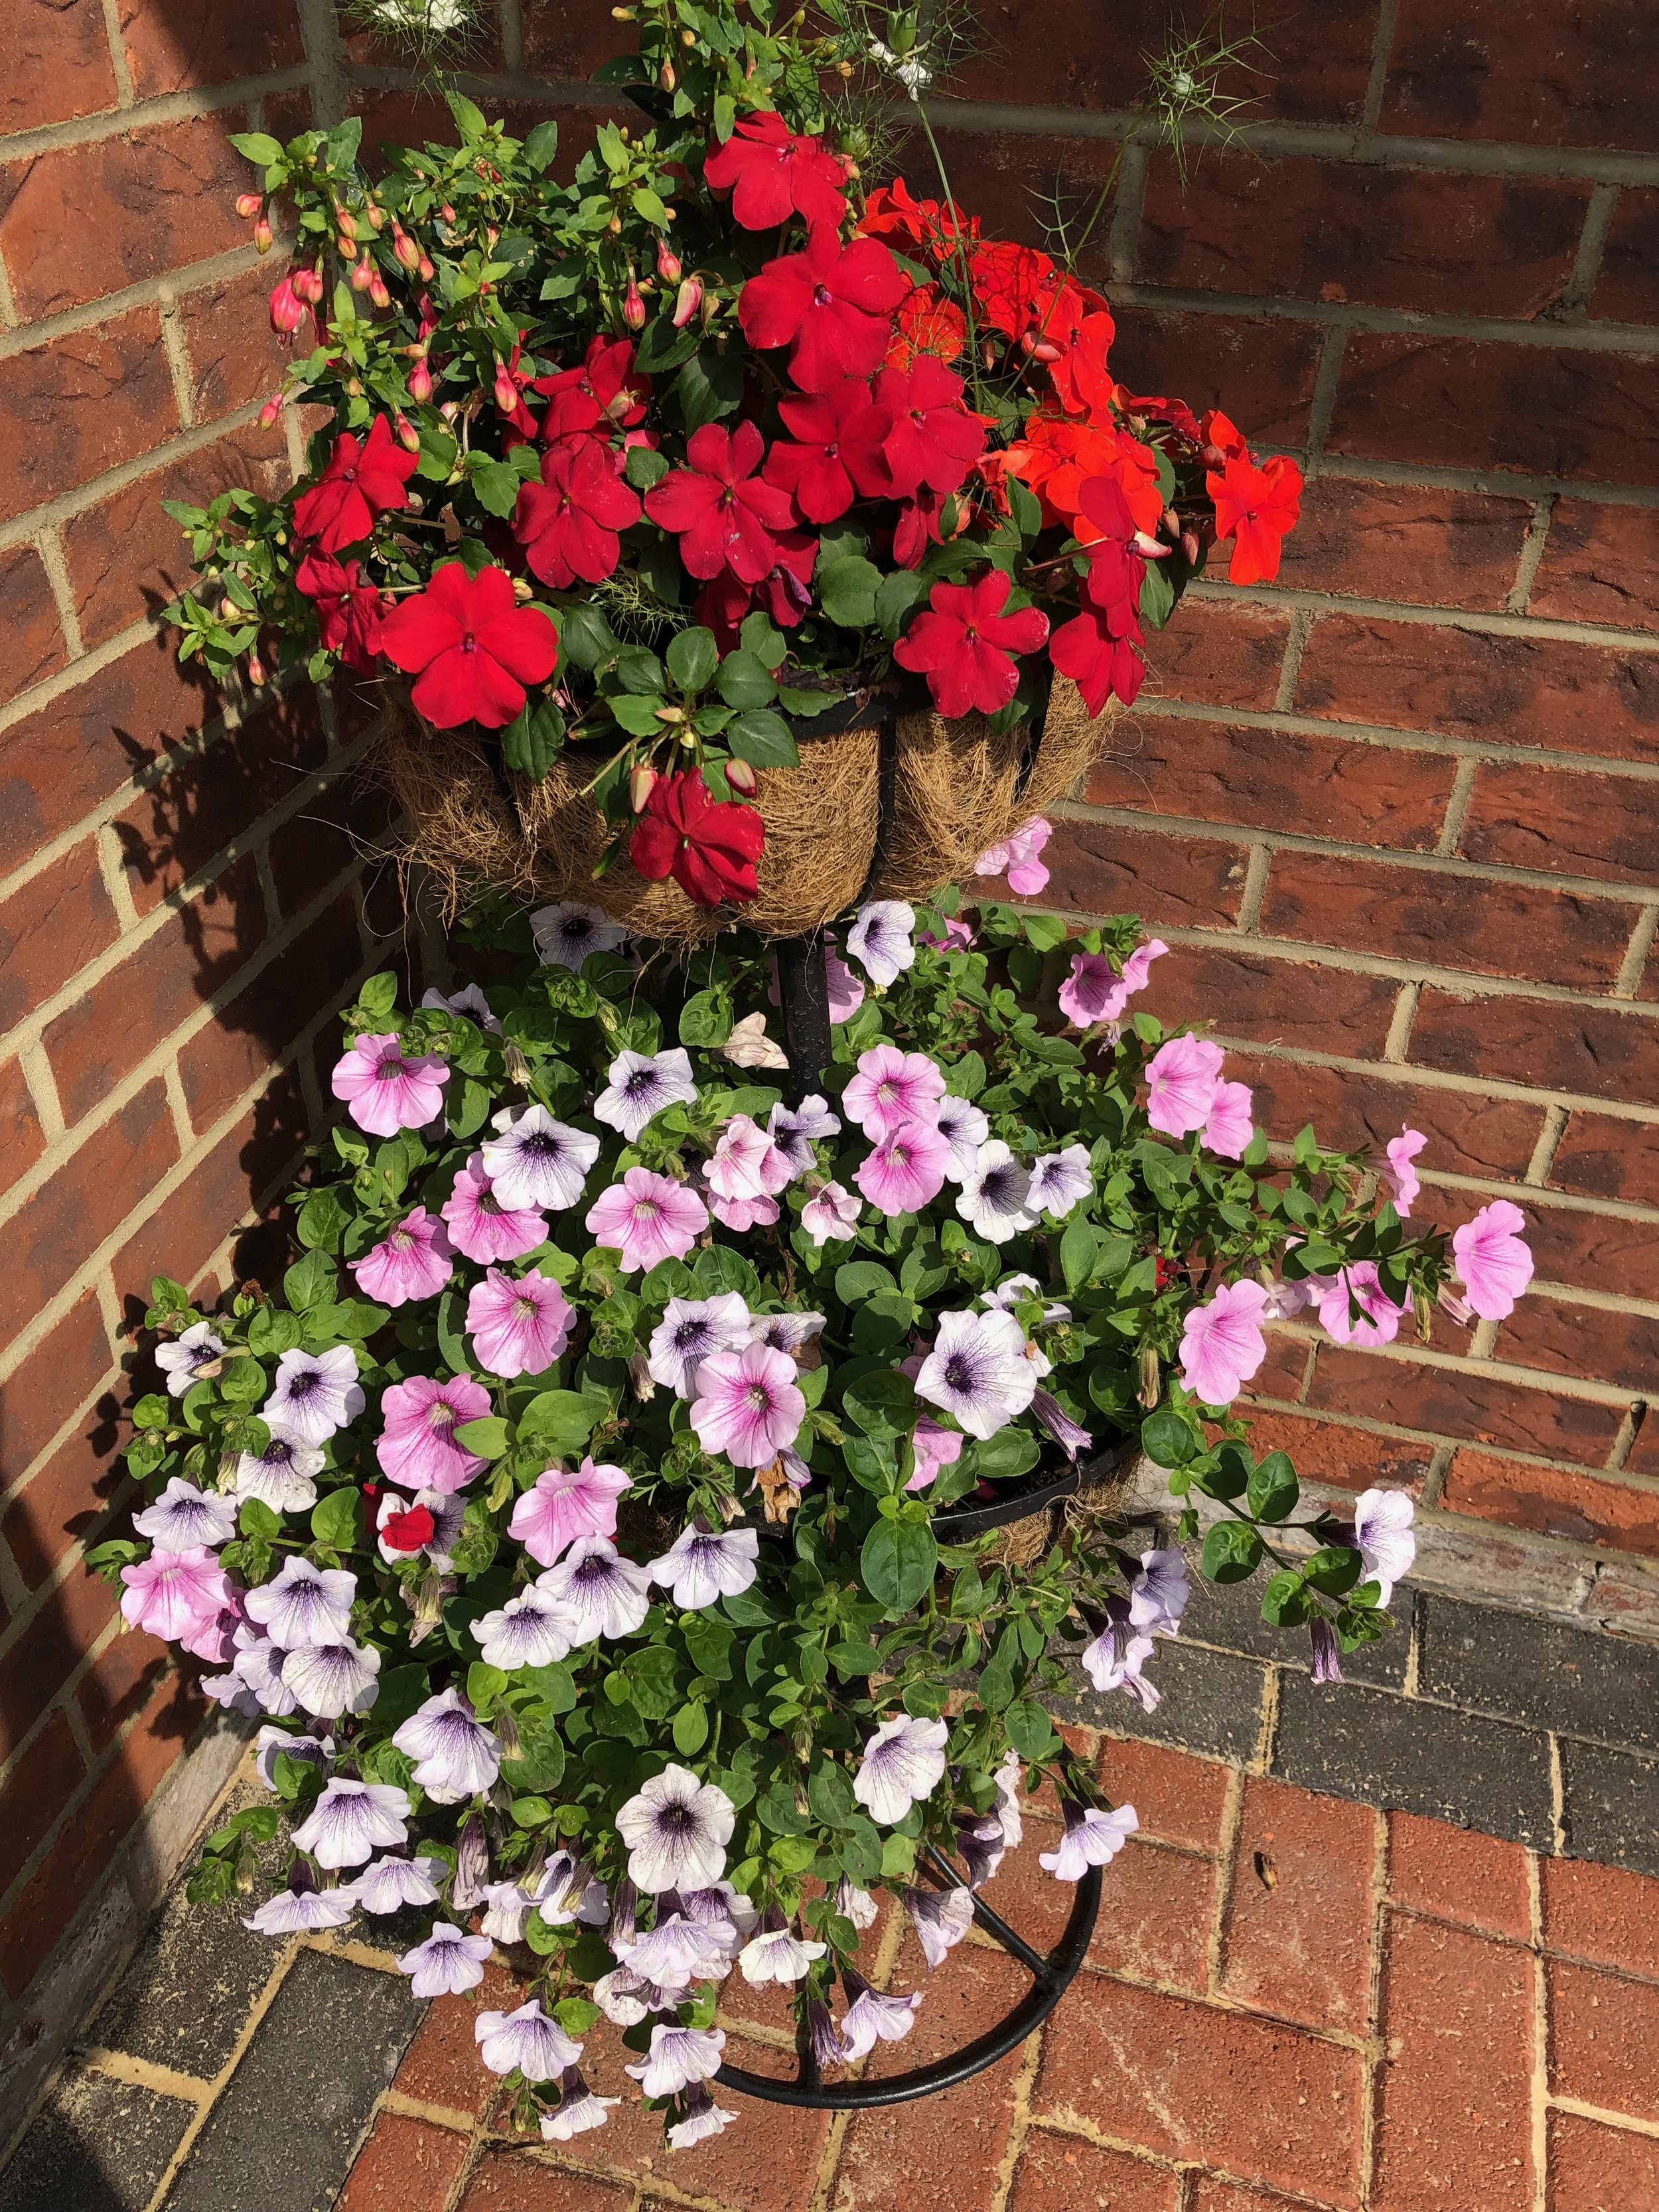 Hanging baskets in full bloom